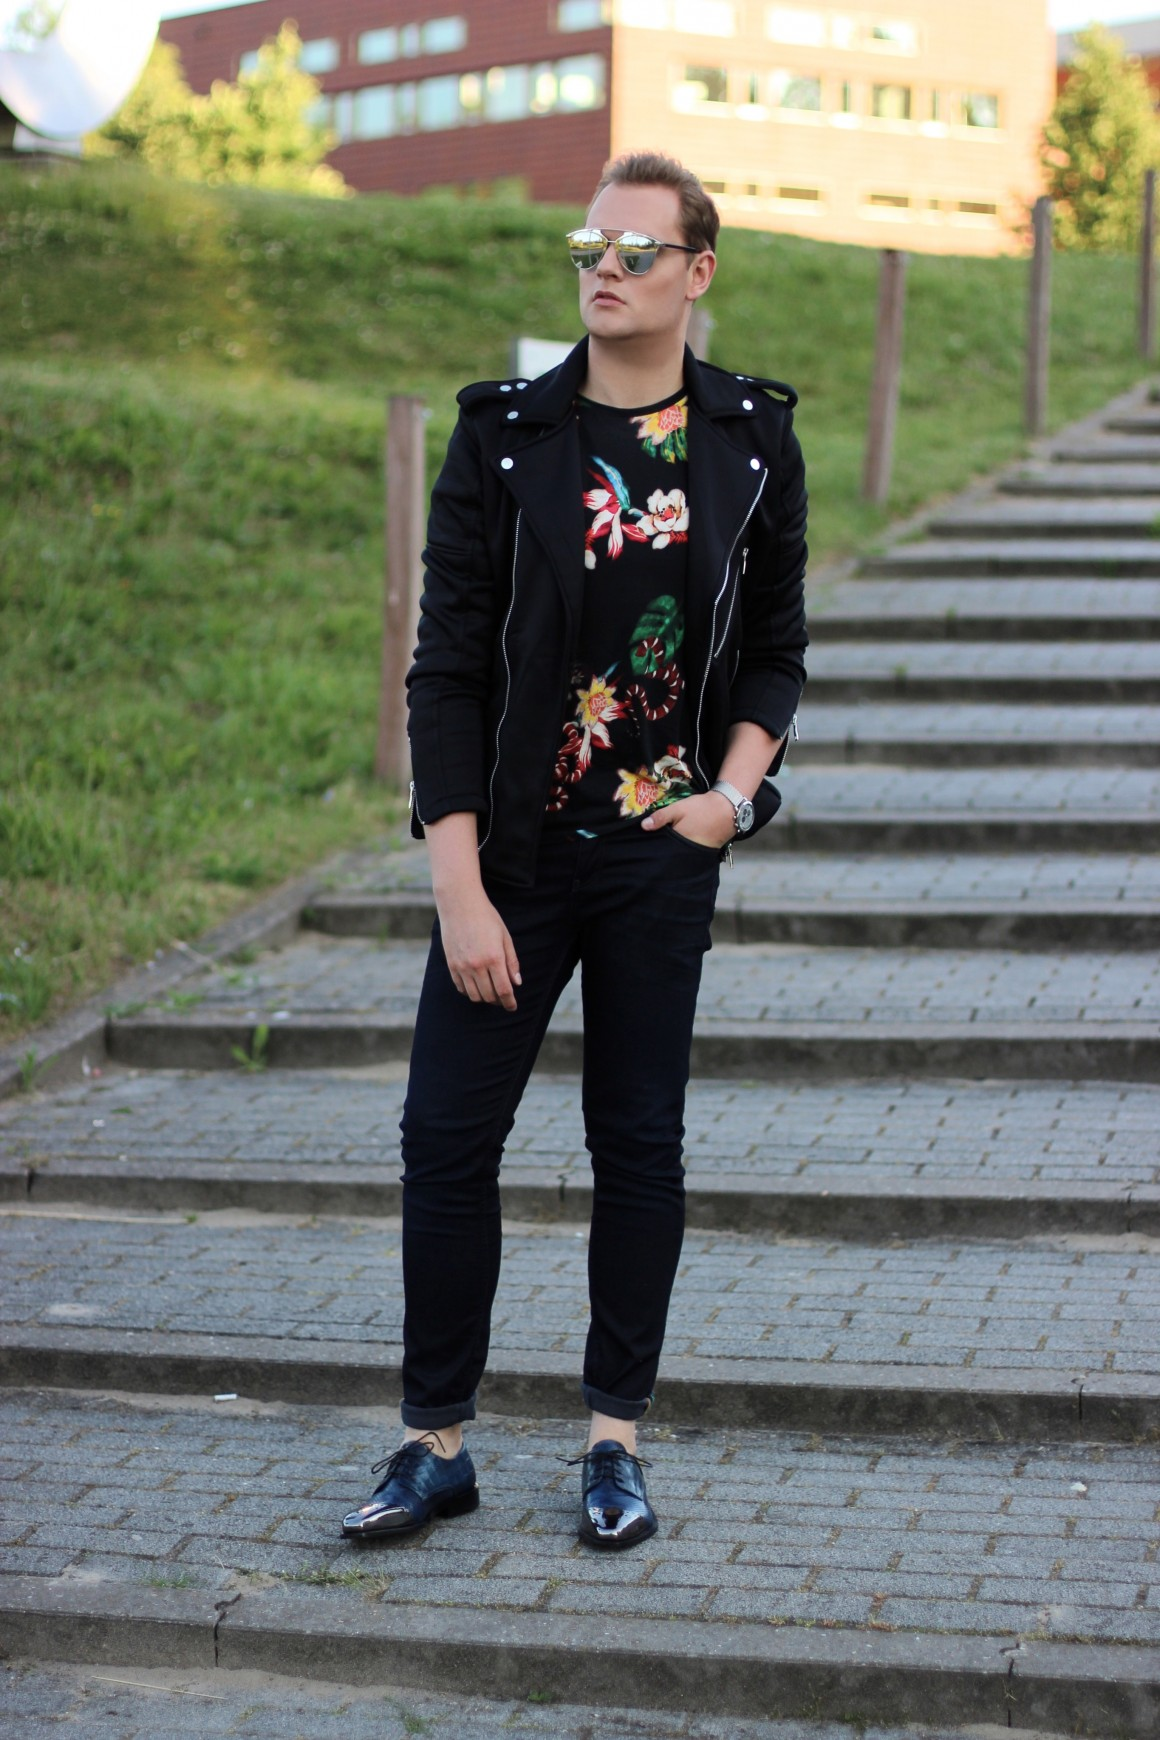 Flower Prints JustKVN menswear and lifestyle blog. Zara shirt, Melvin and Hamilton shoes